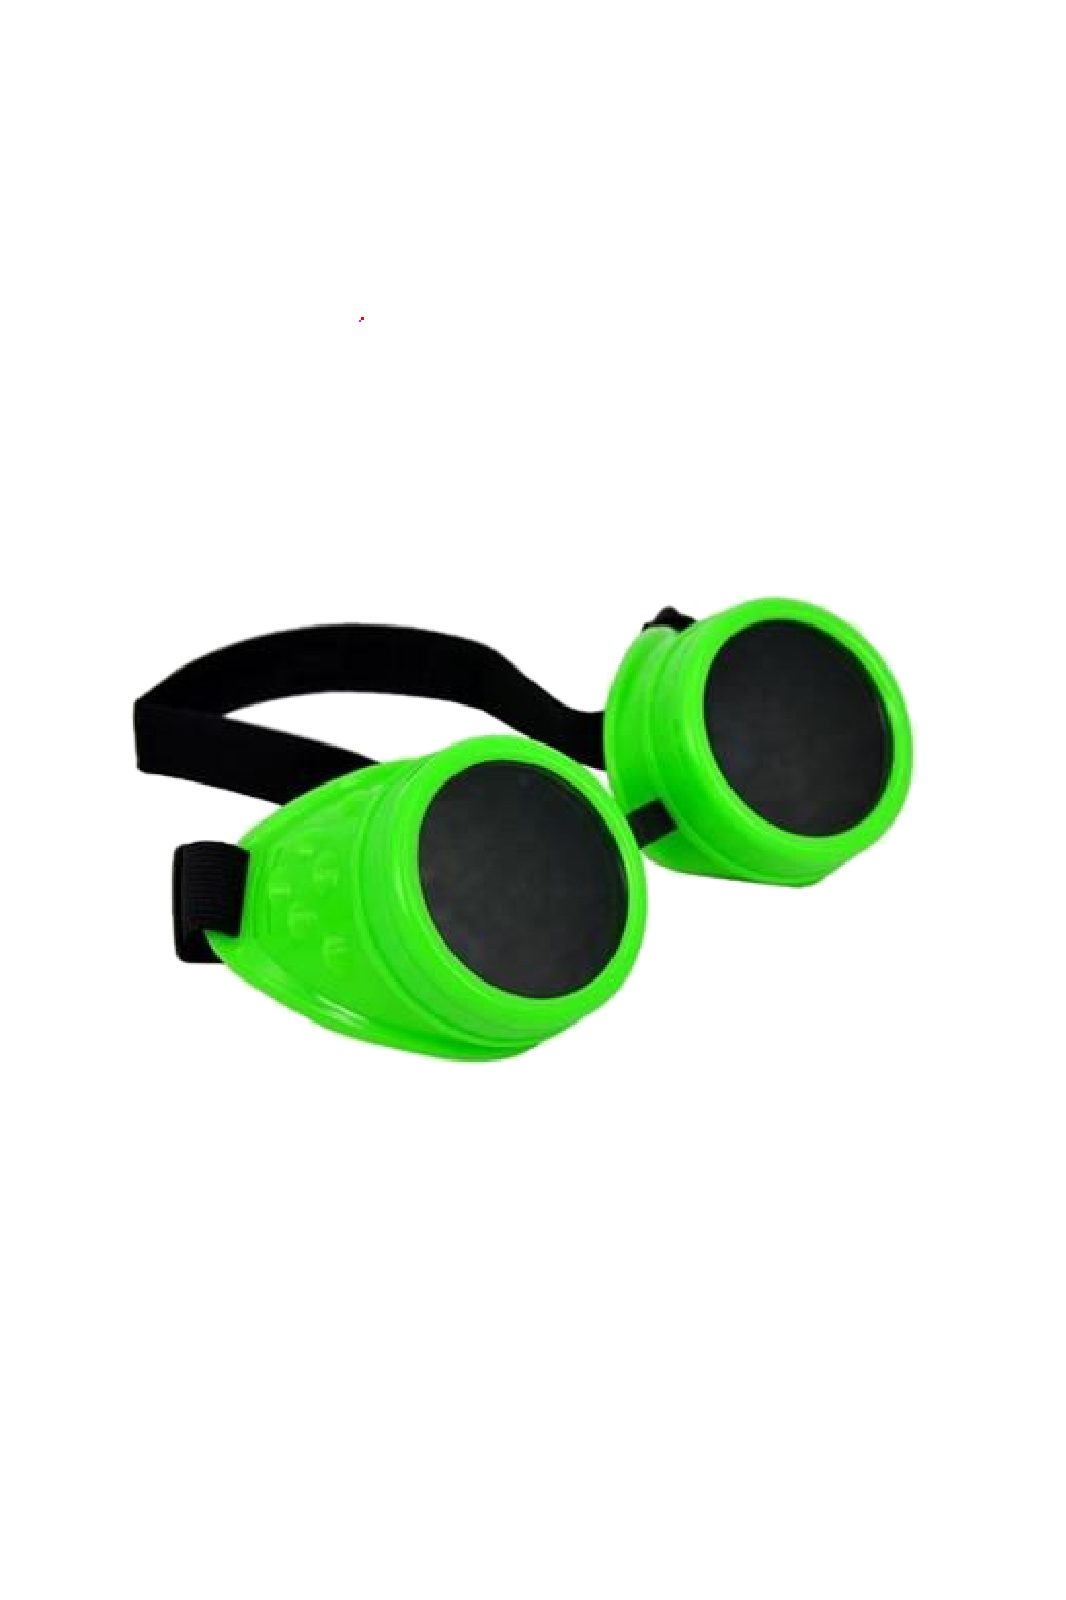 Sp goggles green